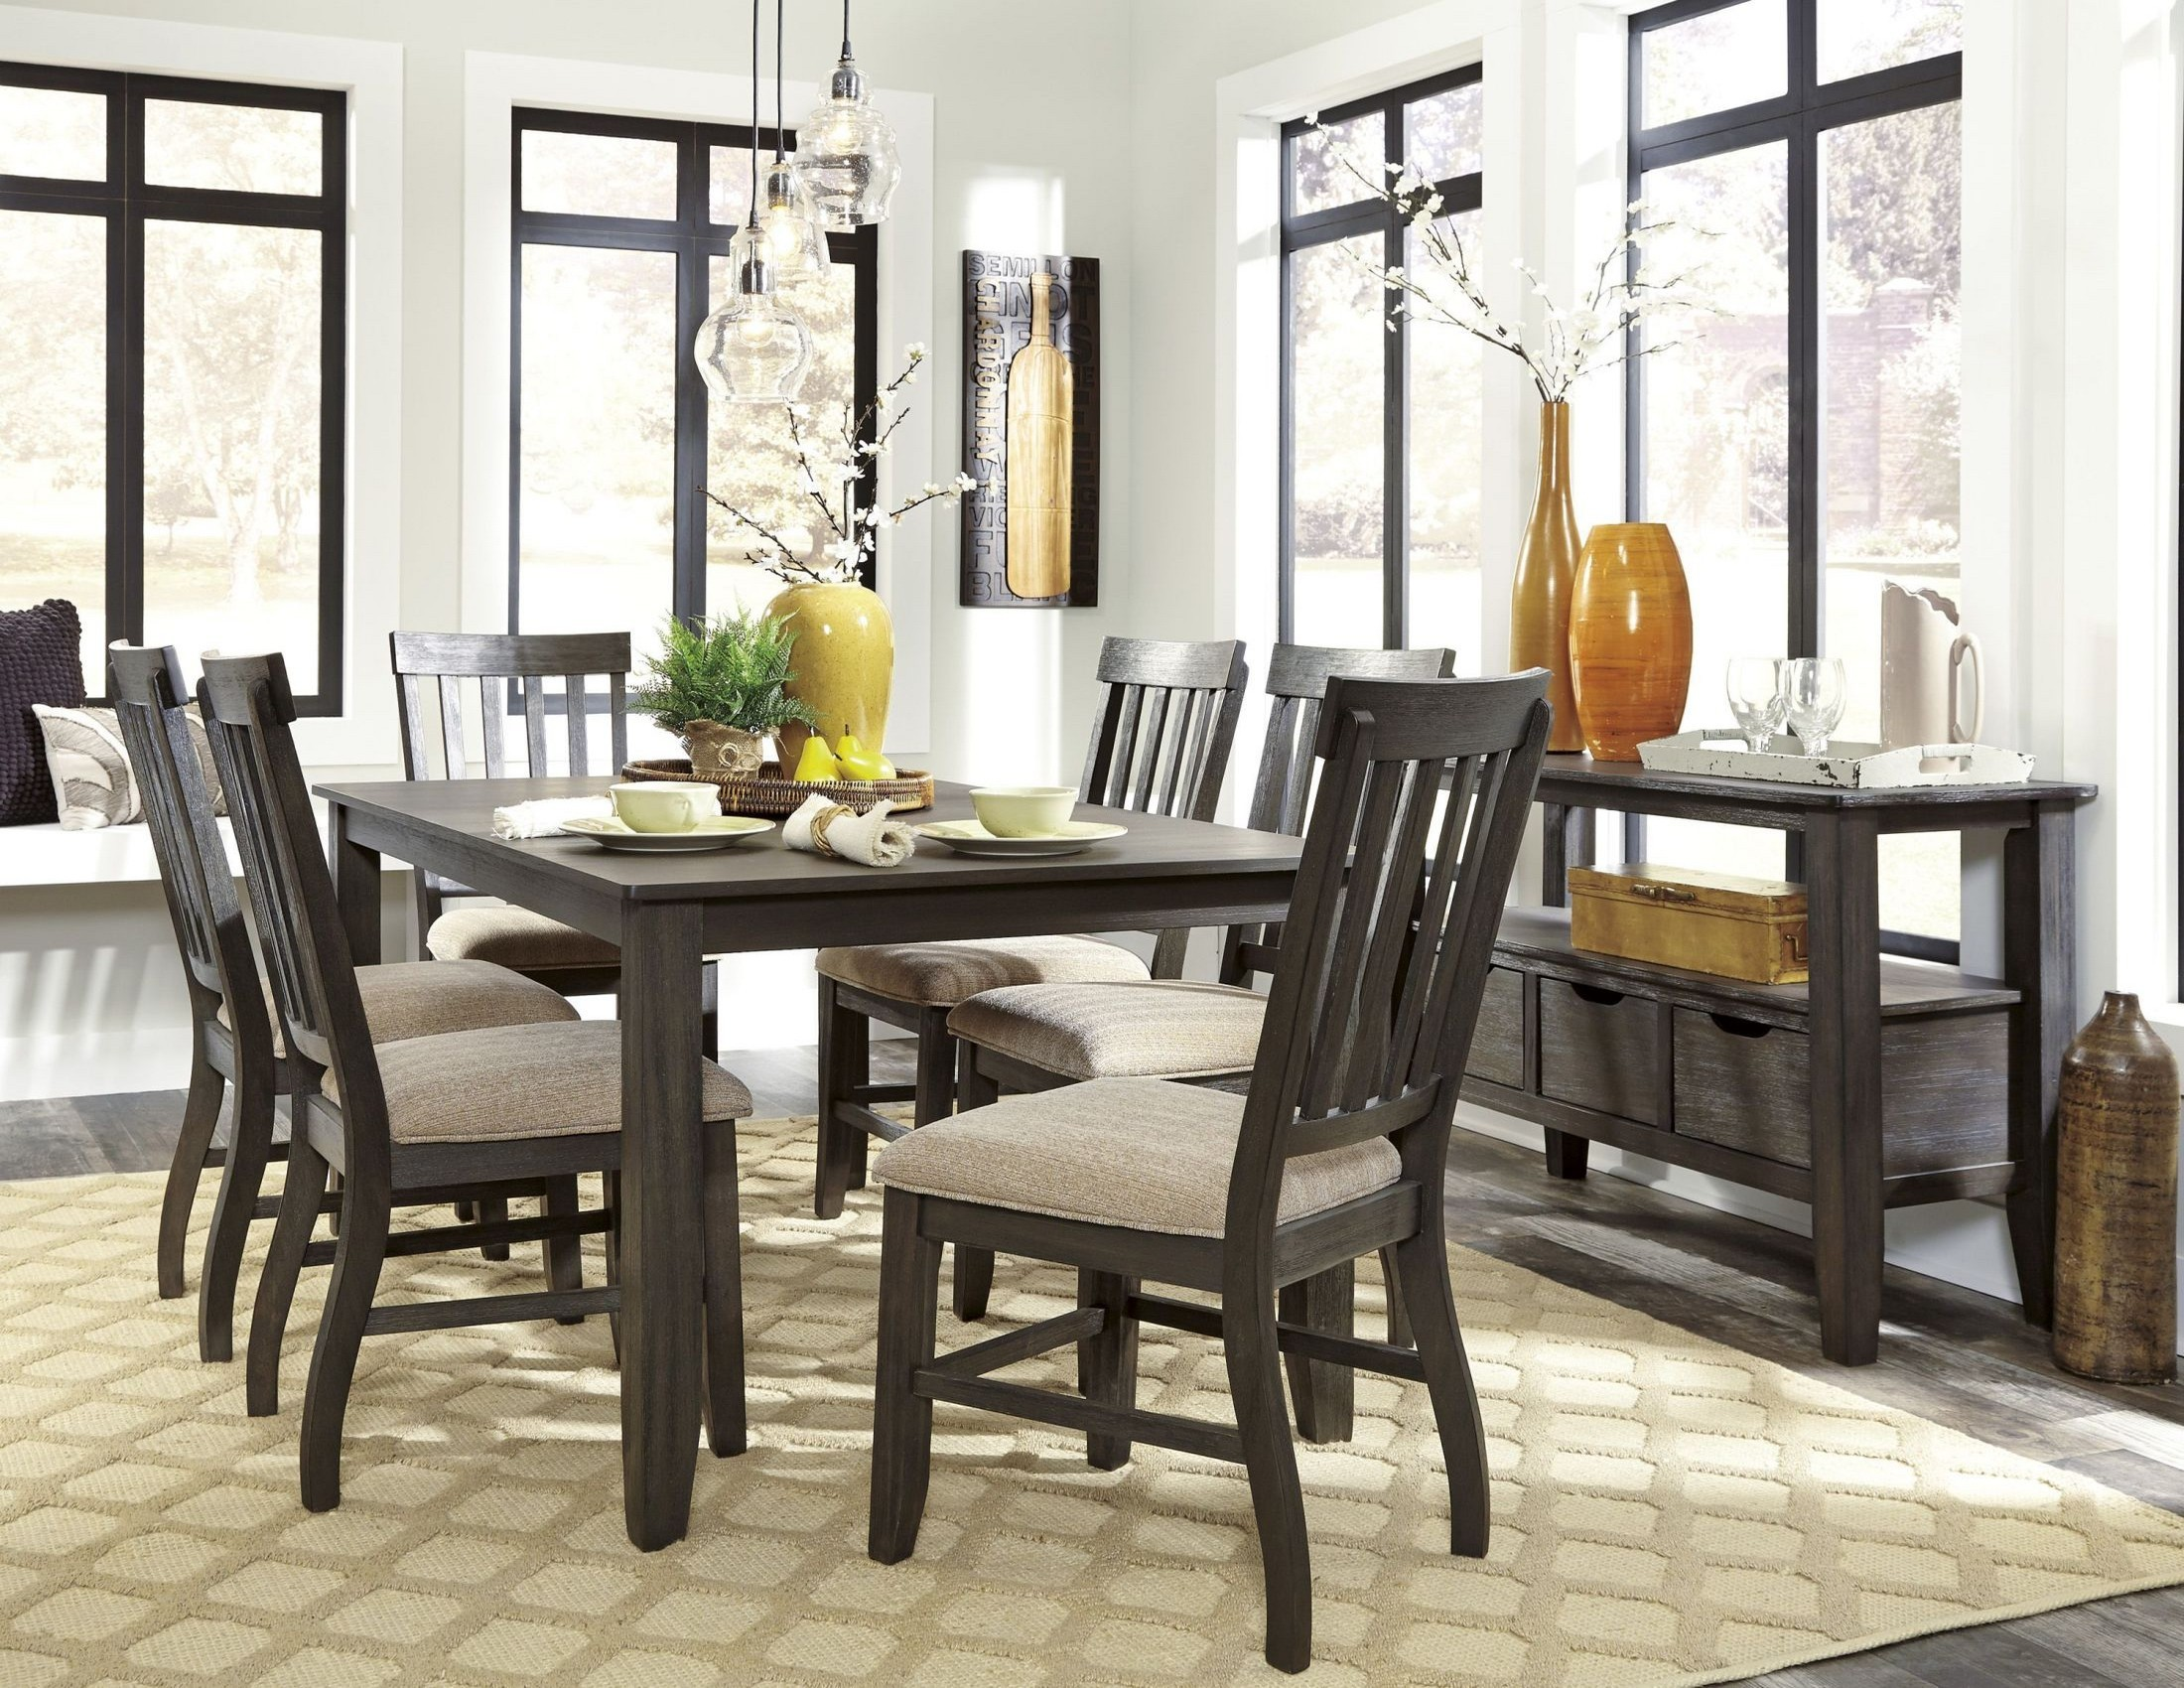 Dresbar grayish brown rectangular dining room set from for Brown dining room set